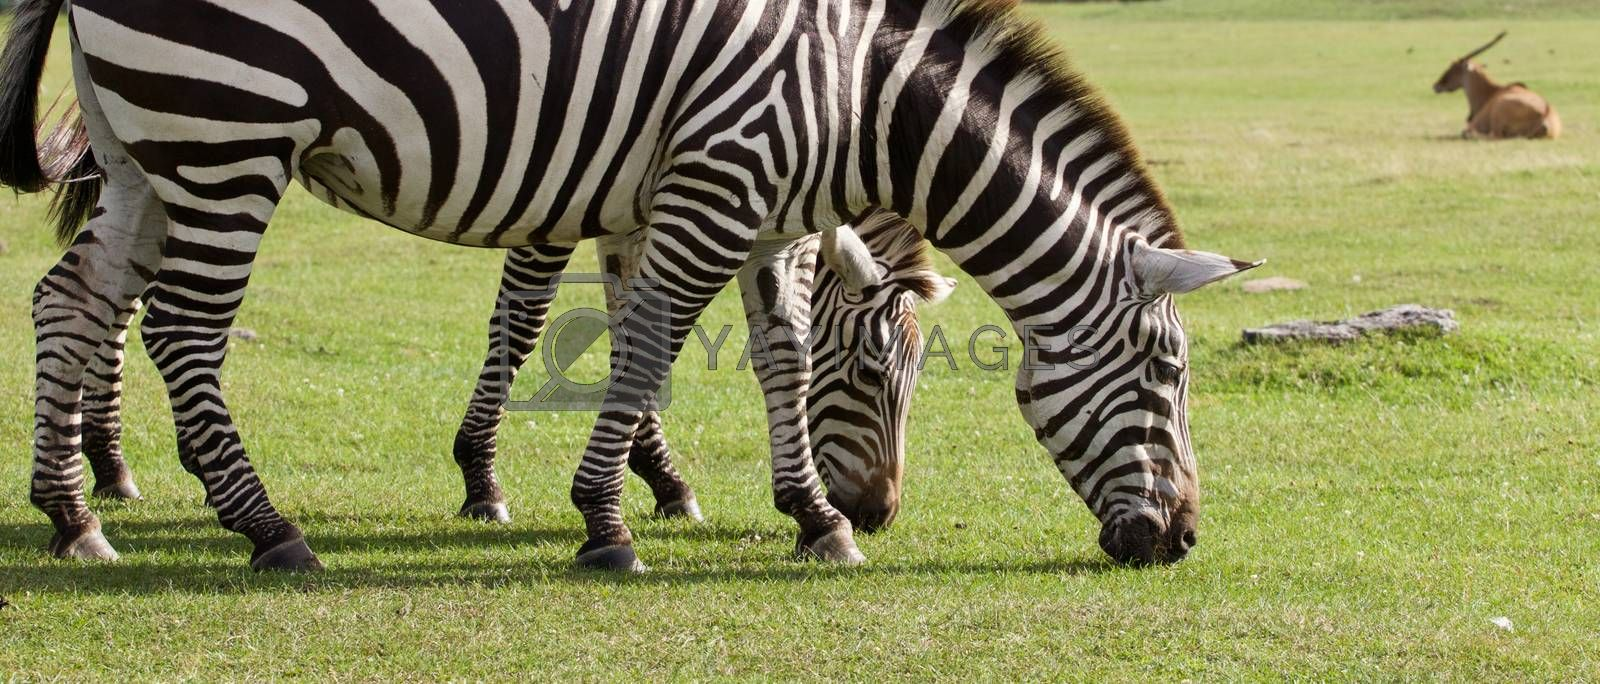 Two beautiful zebras on the grass field  by teo